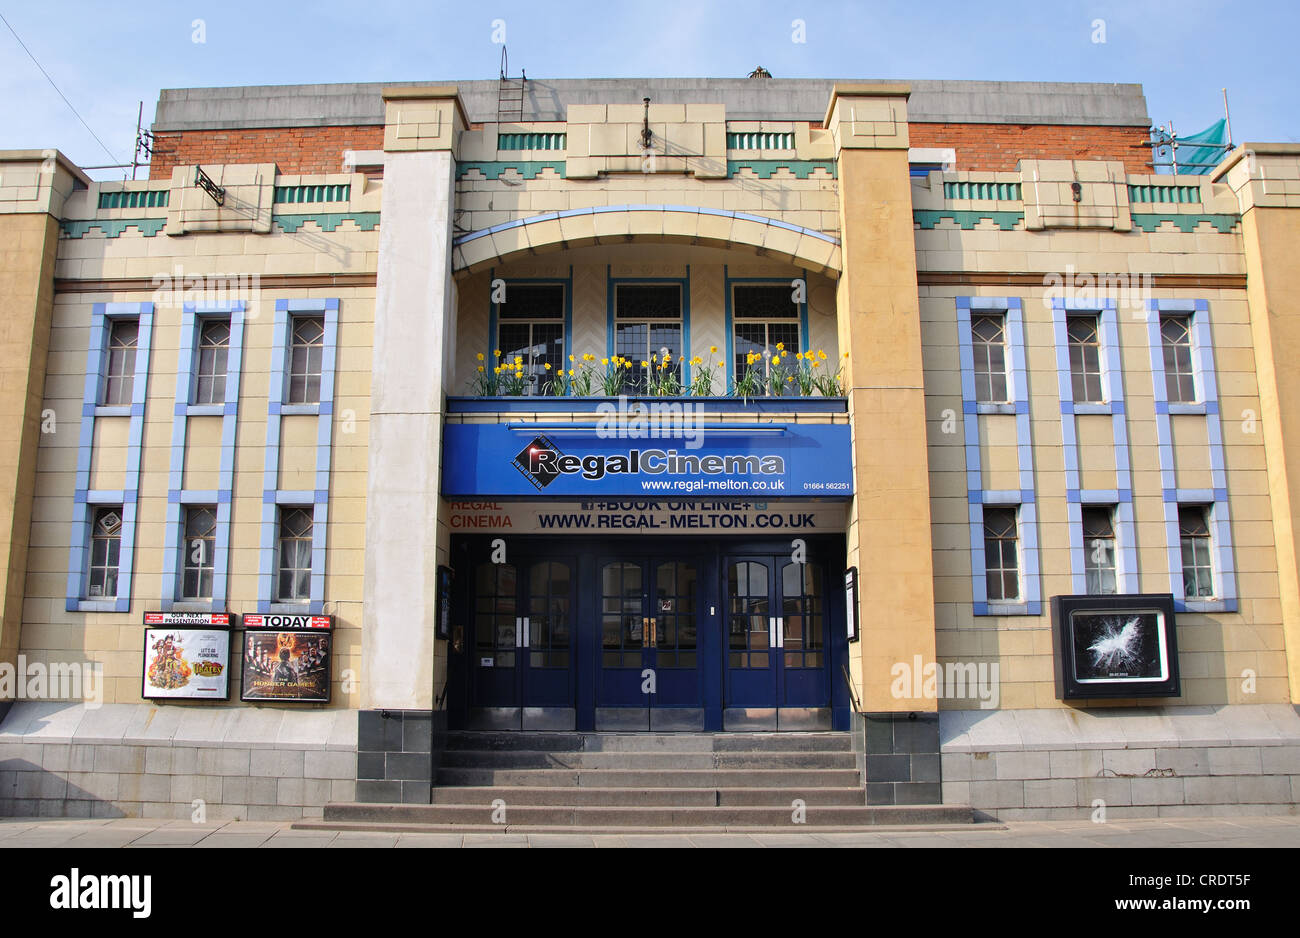 Regal Cinema, King Street, Melton Mowbray, Leicestershire, Inglaterra, Reino Unido. Imagen De Stock